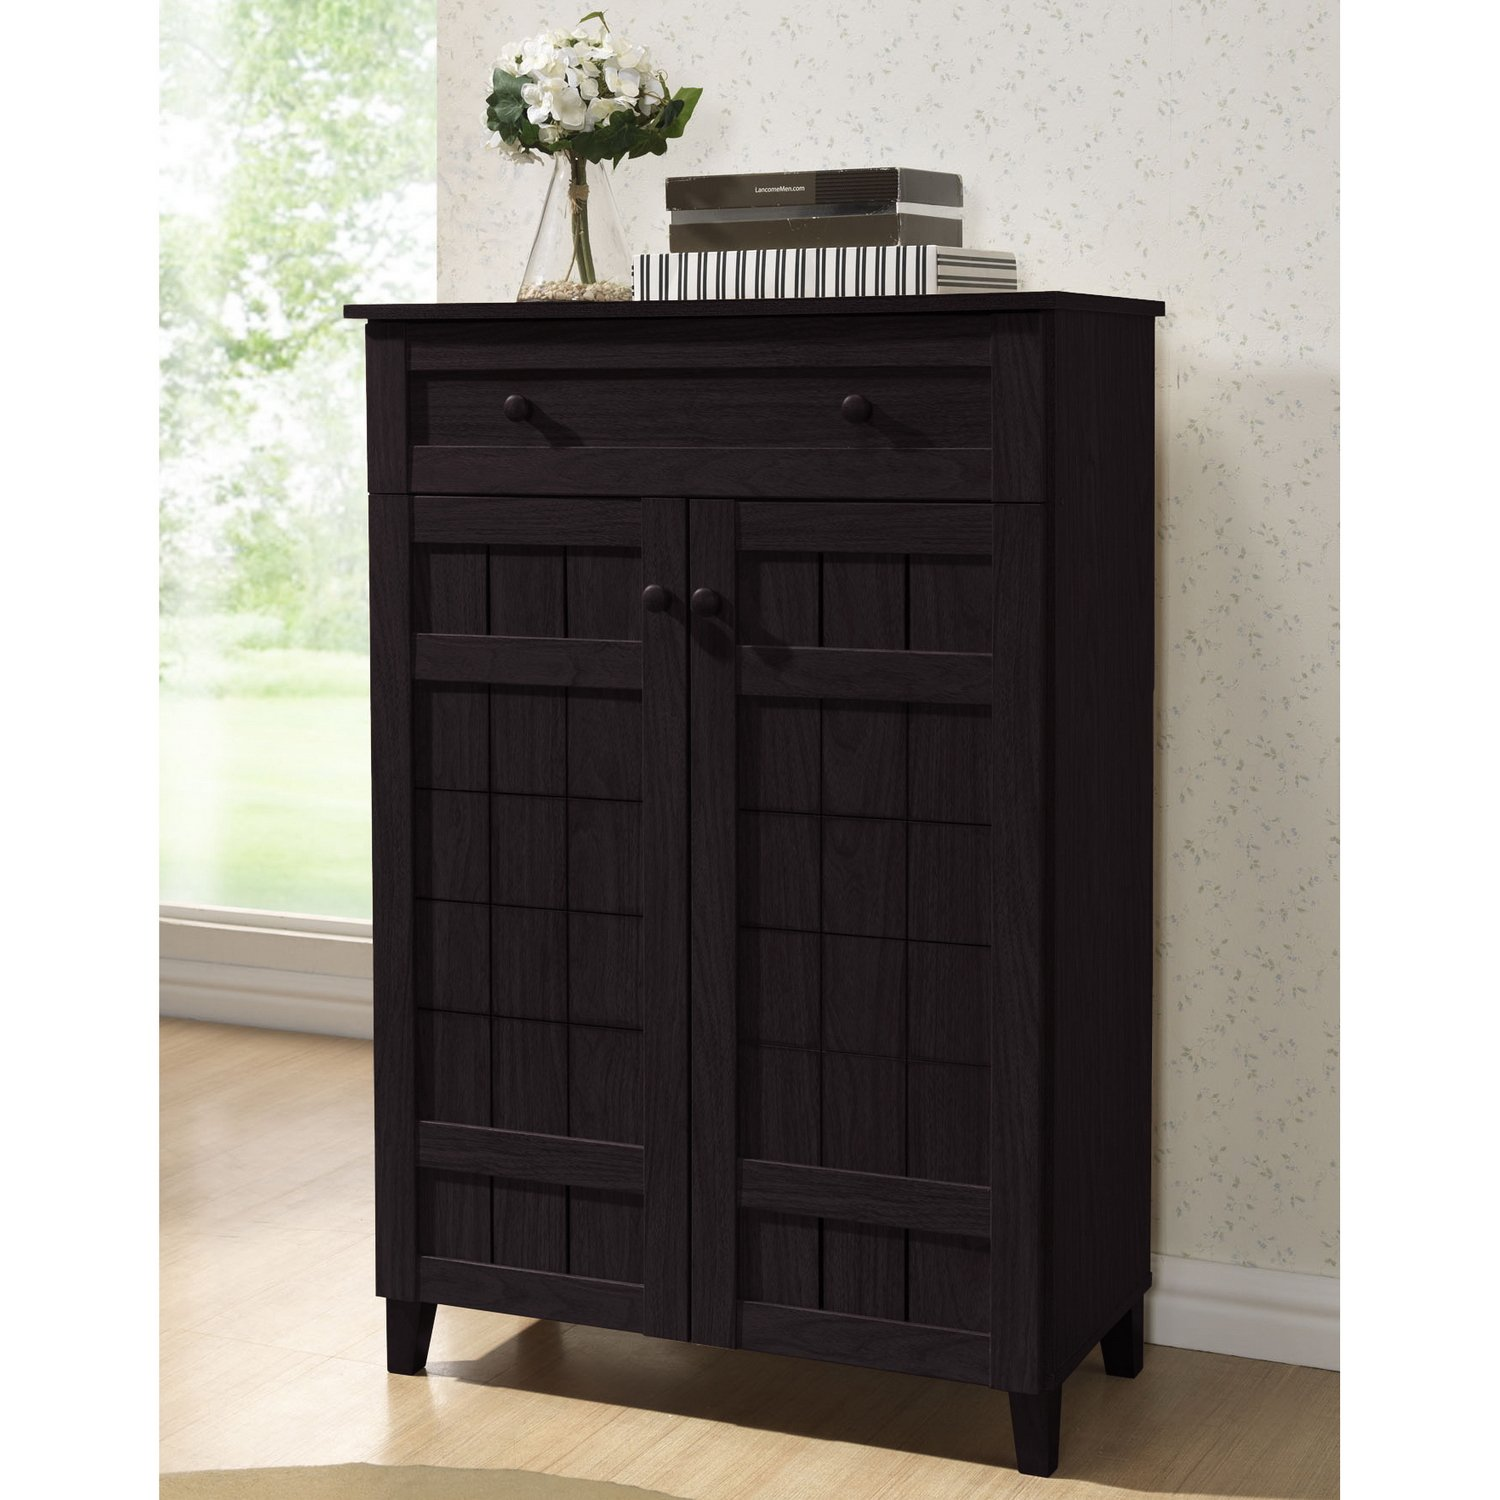 Design Modern Shoe Storage amazon com baxton studio glidden wood modern shoe cabinet tall dark brown kitchen dining